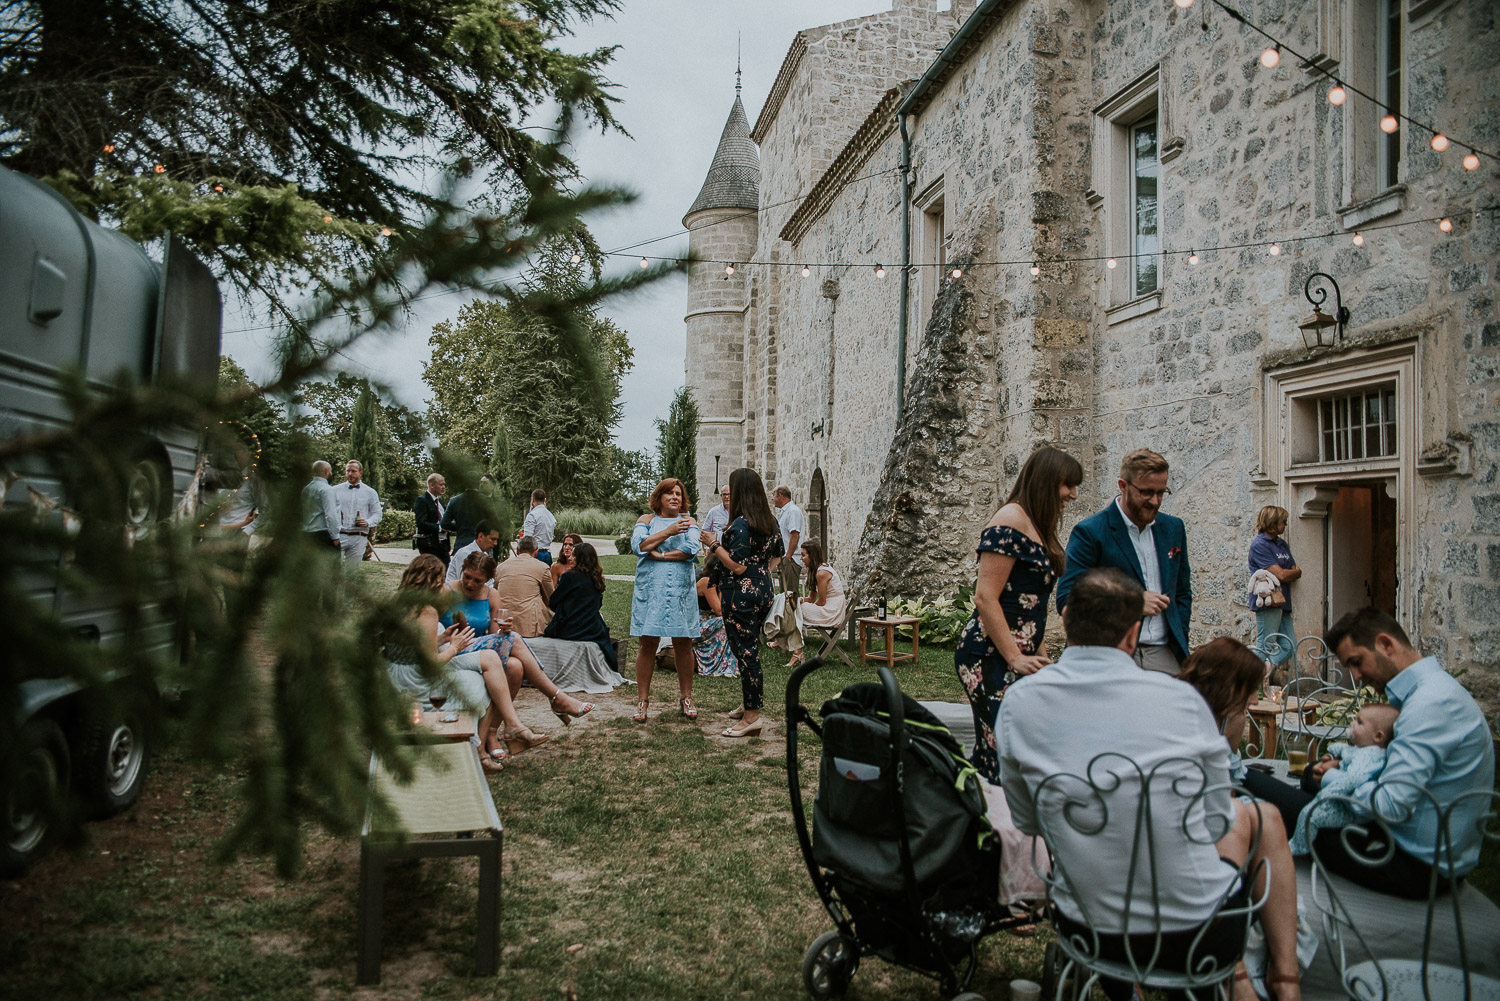 chateau_de_lisse_gascony_south_west_france_wedding_katy_webb_photography_UK120